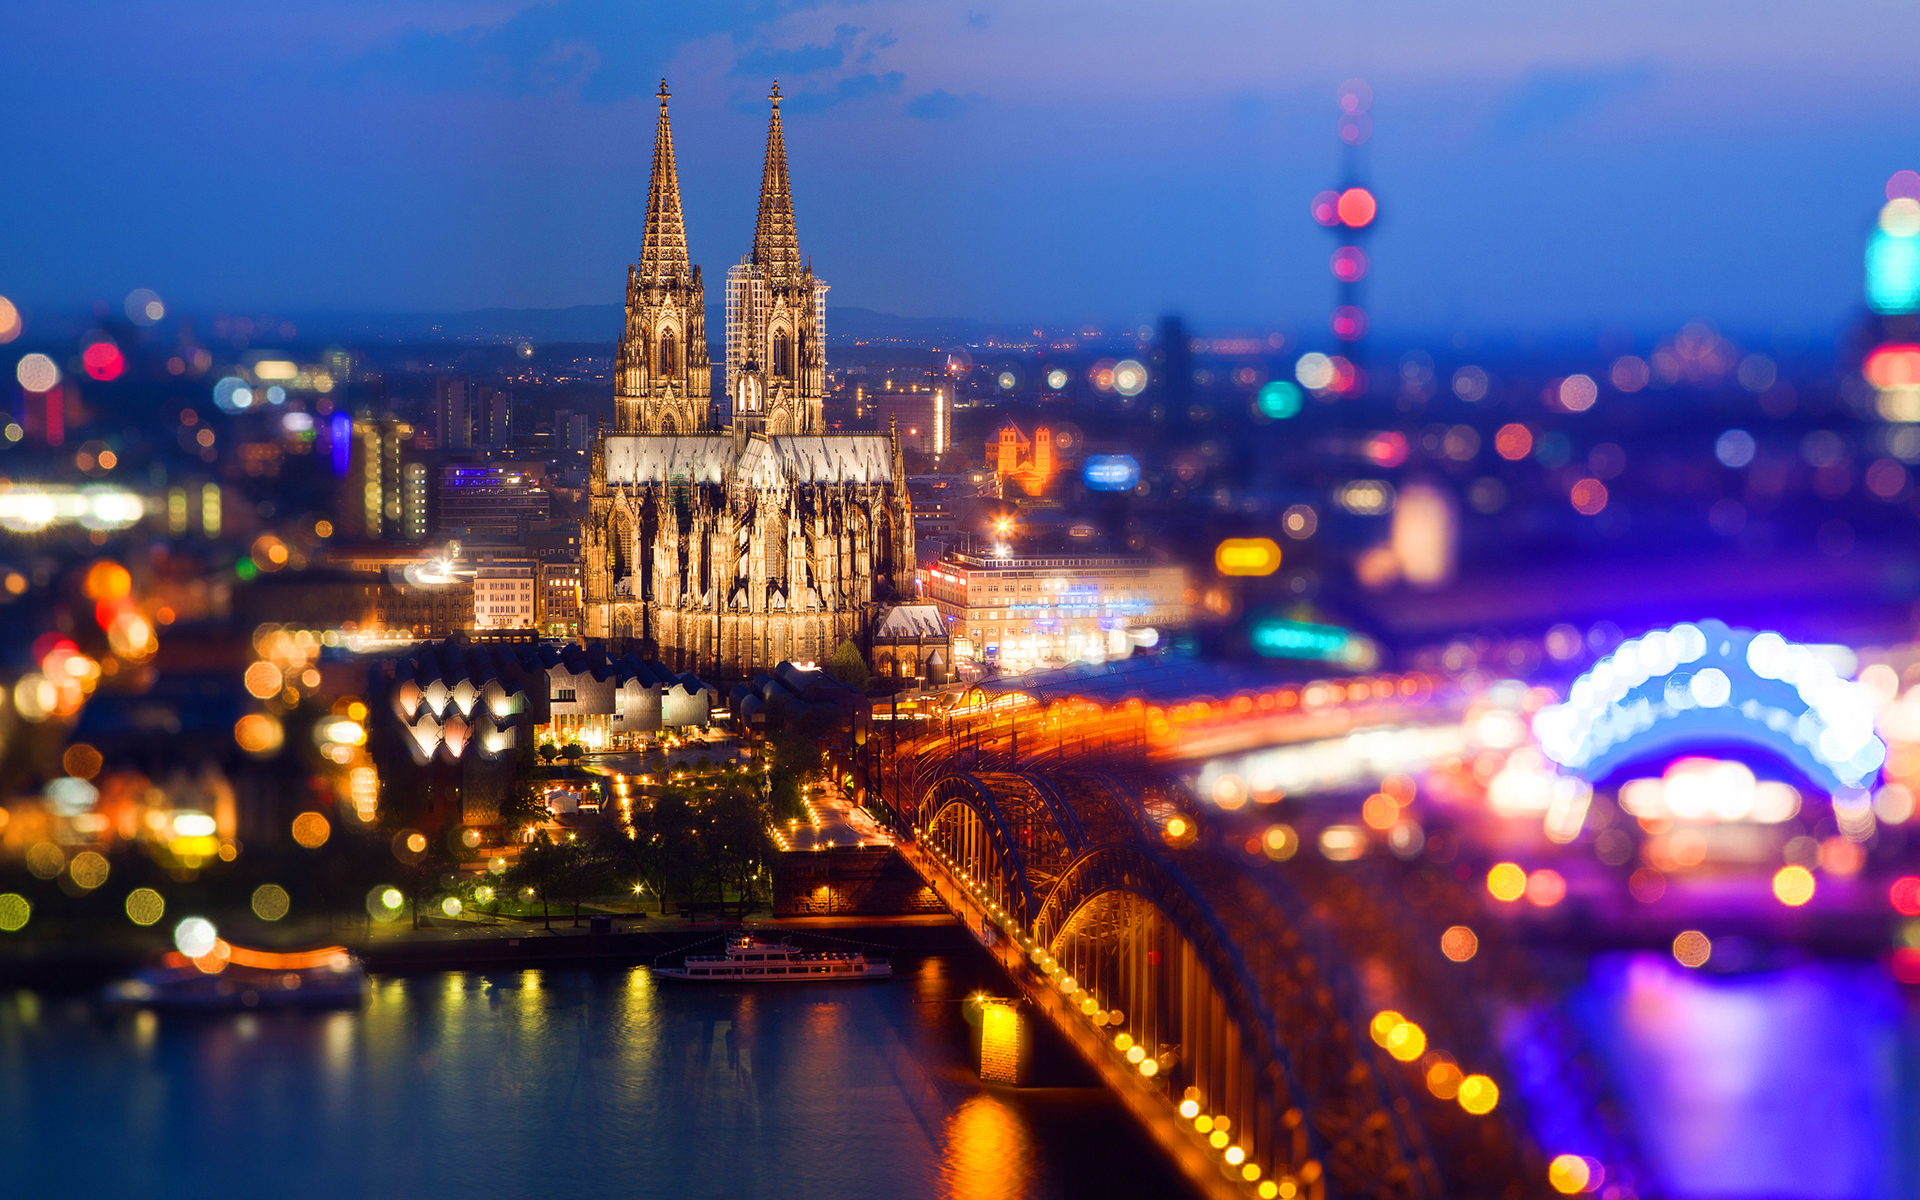 Cologne blurred night